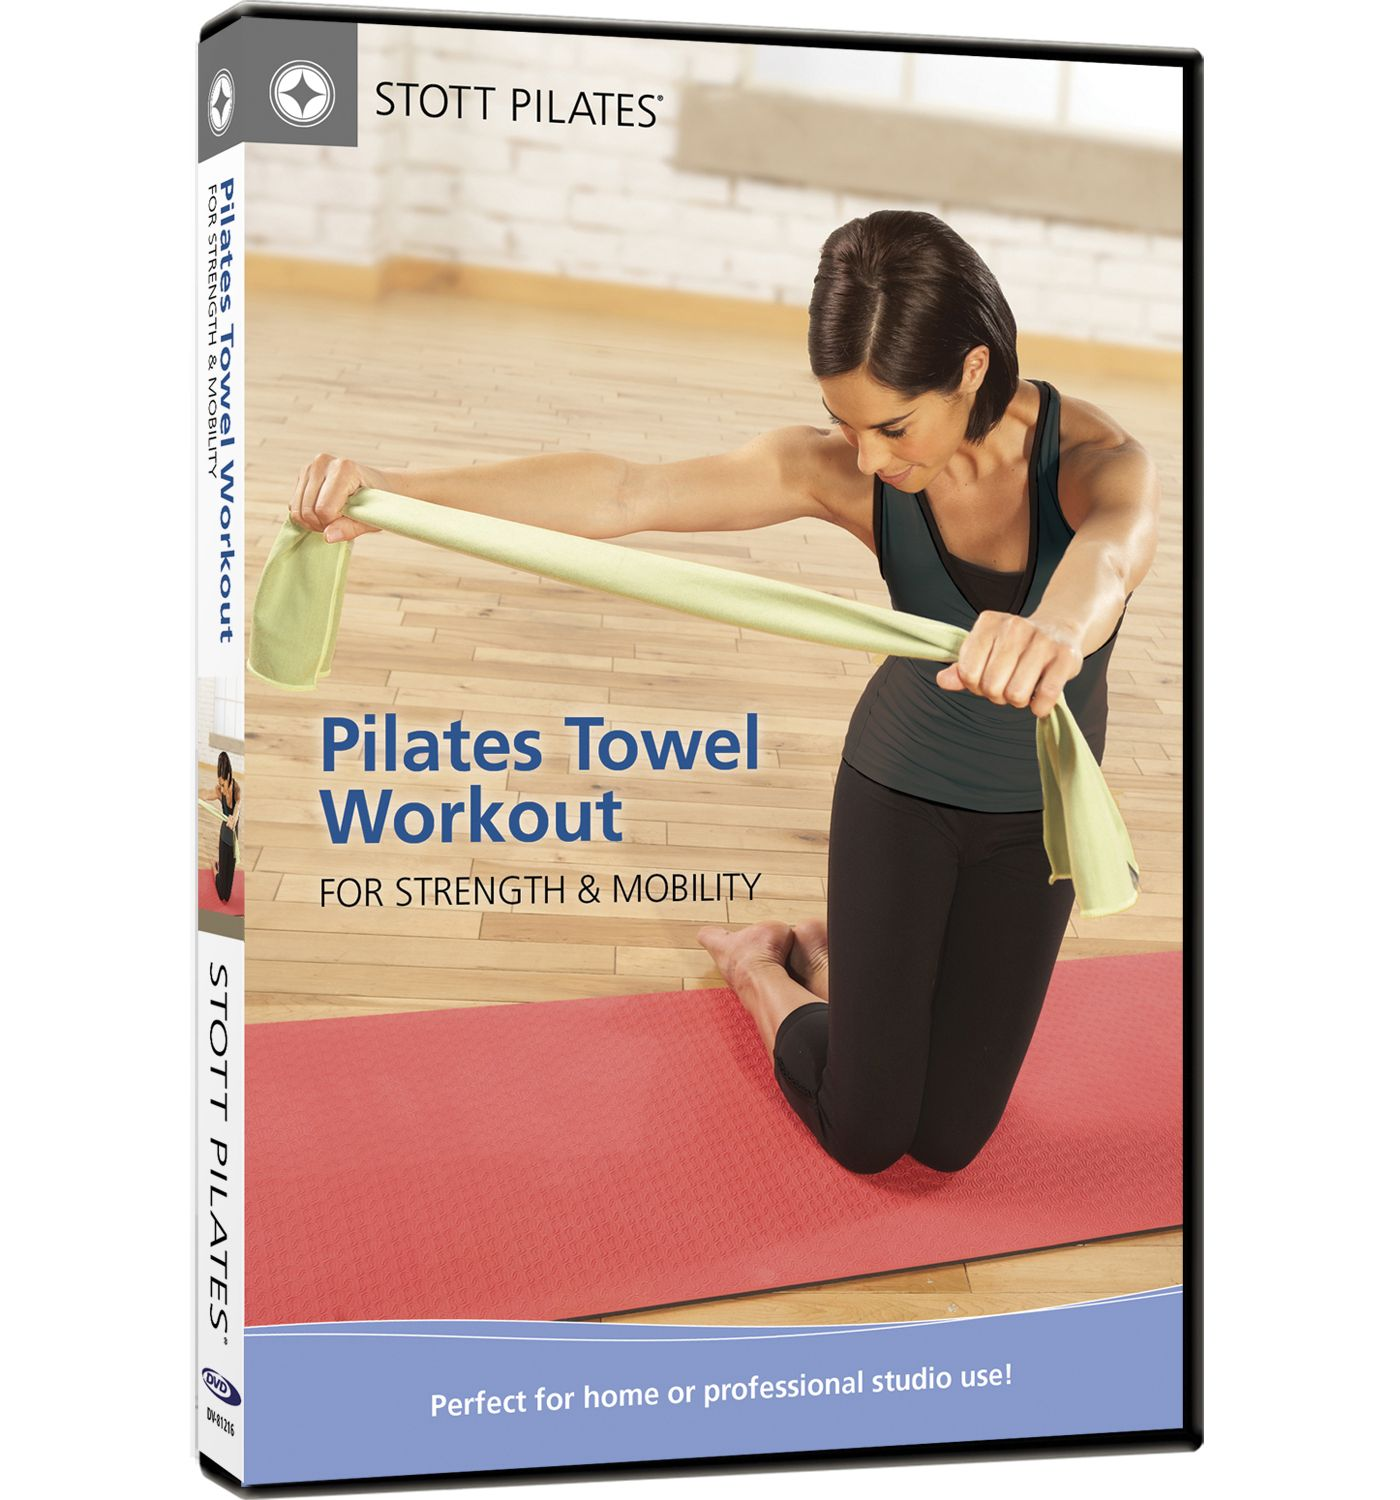 STOTT PILATES Towel Workout for Strength & Mobility DVD